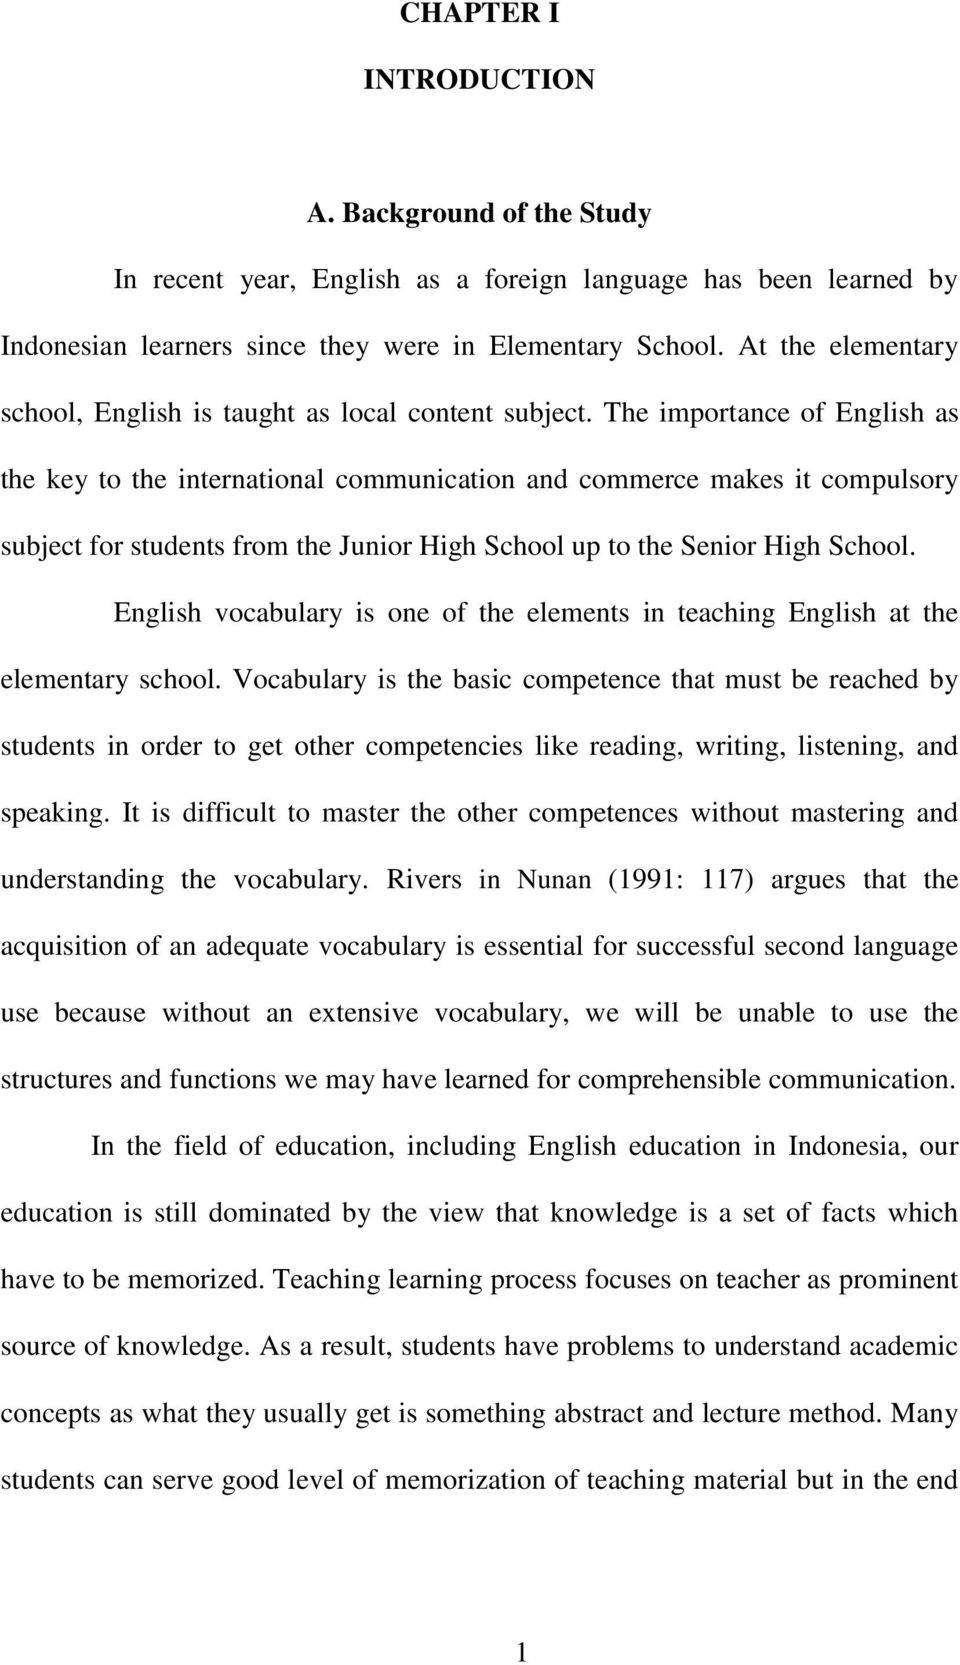 The importance of English as the key to the international communication and commerce makes it compulsory subject for students from the Junior High School up to the Senior High School.